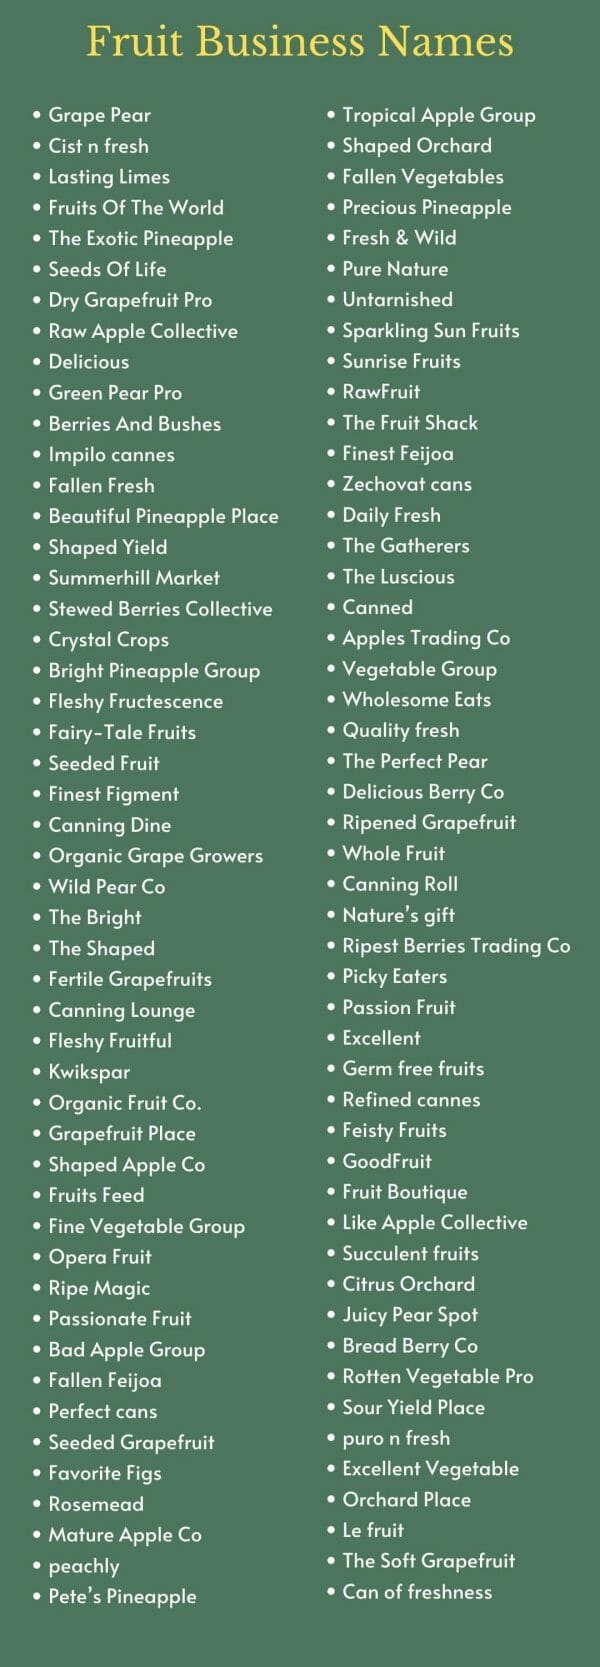 Fruit Business Names: infographic